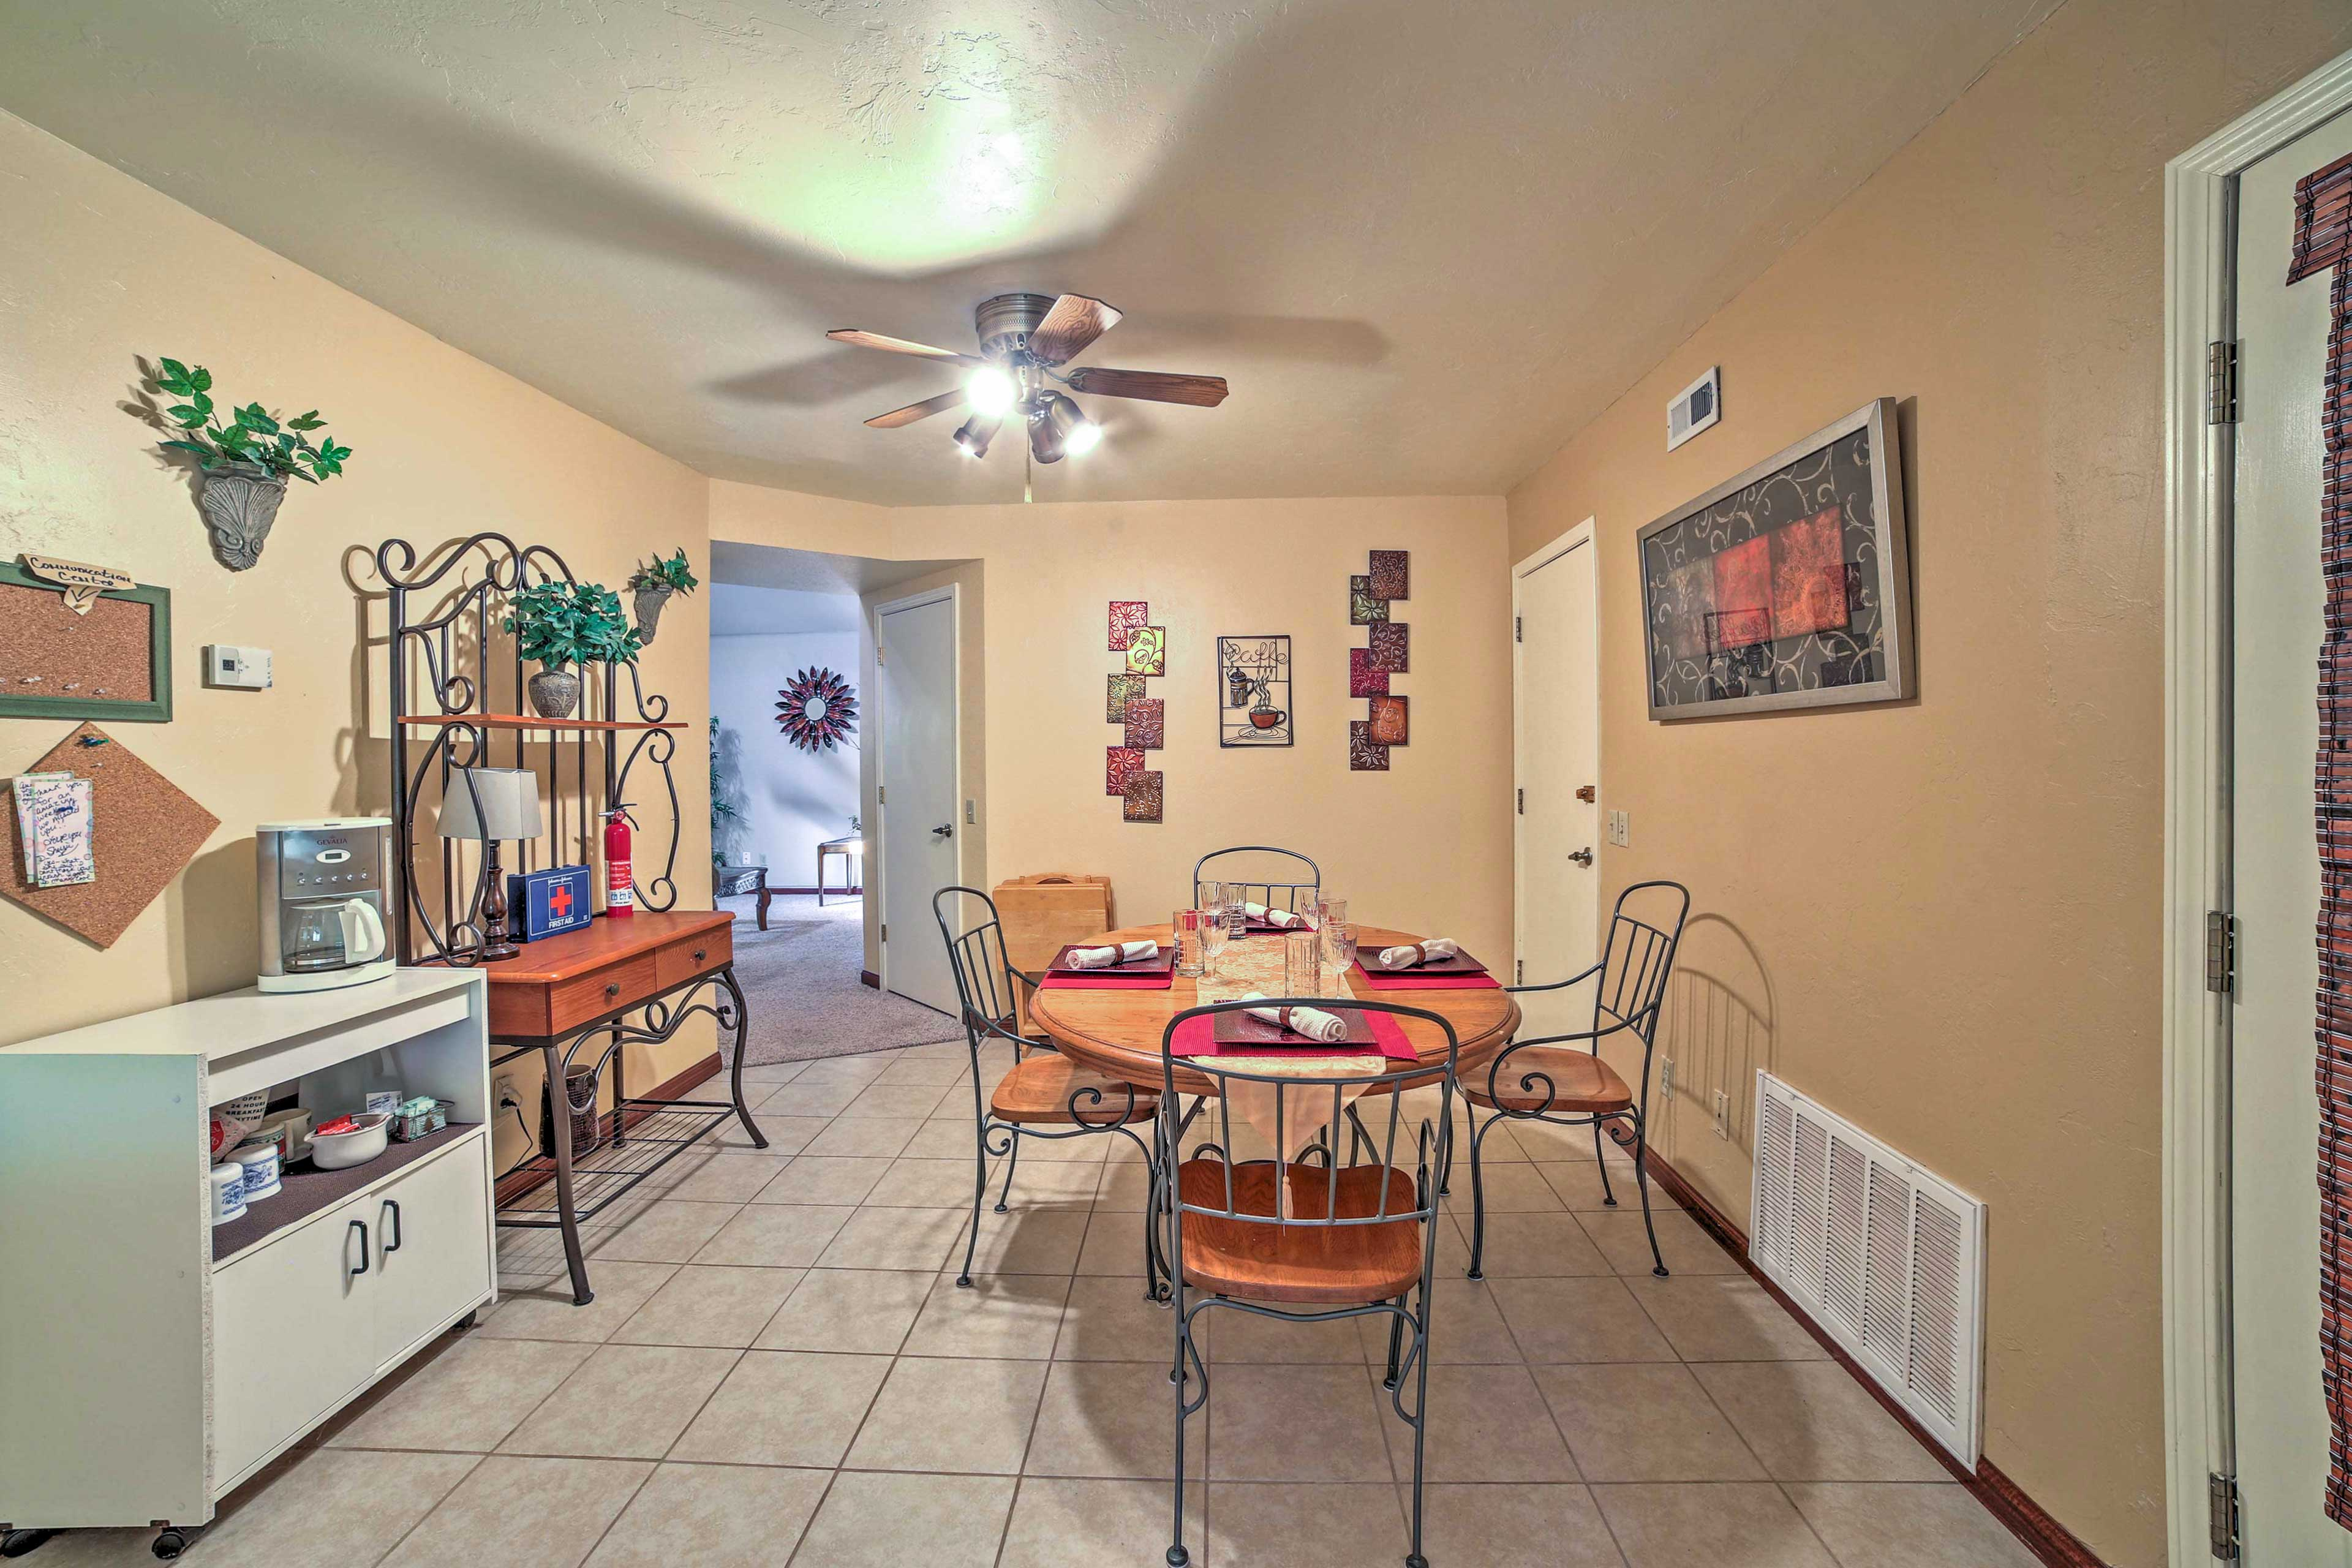 The dining area is adorned with charming art & wall decor.